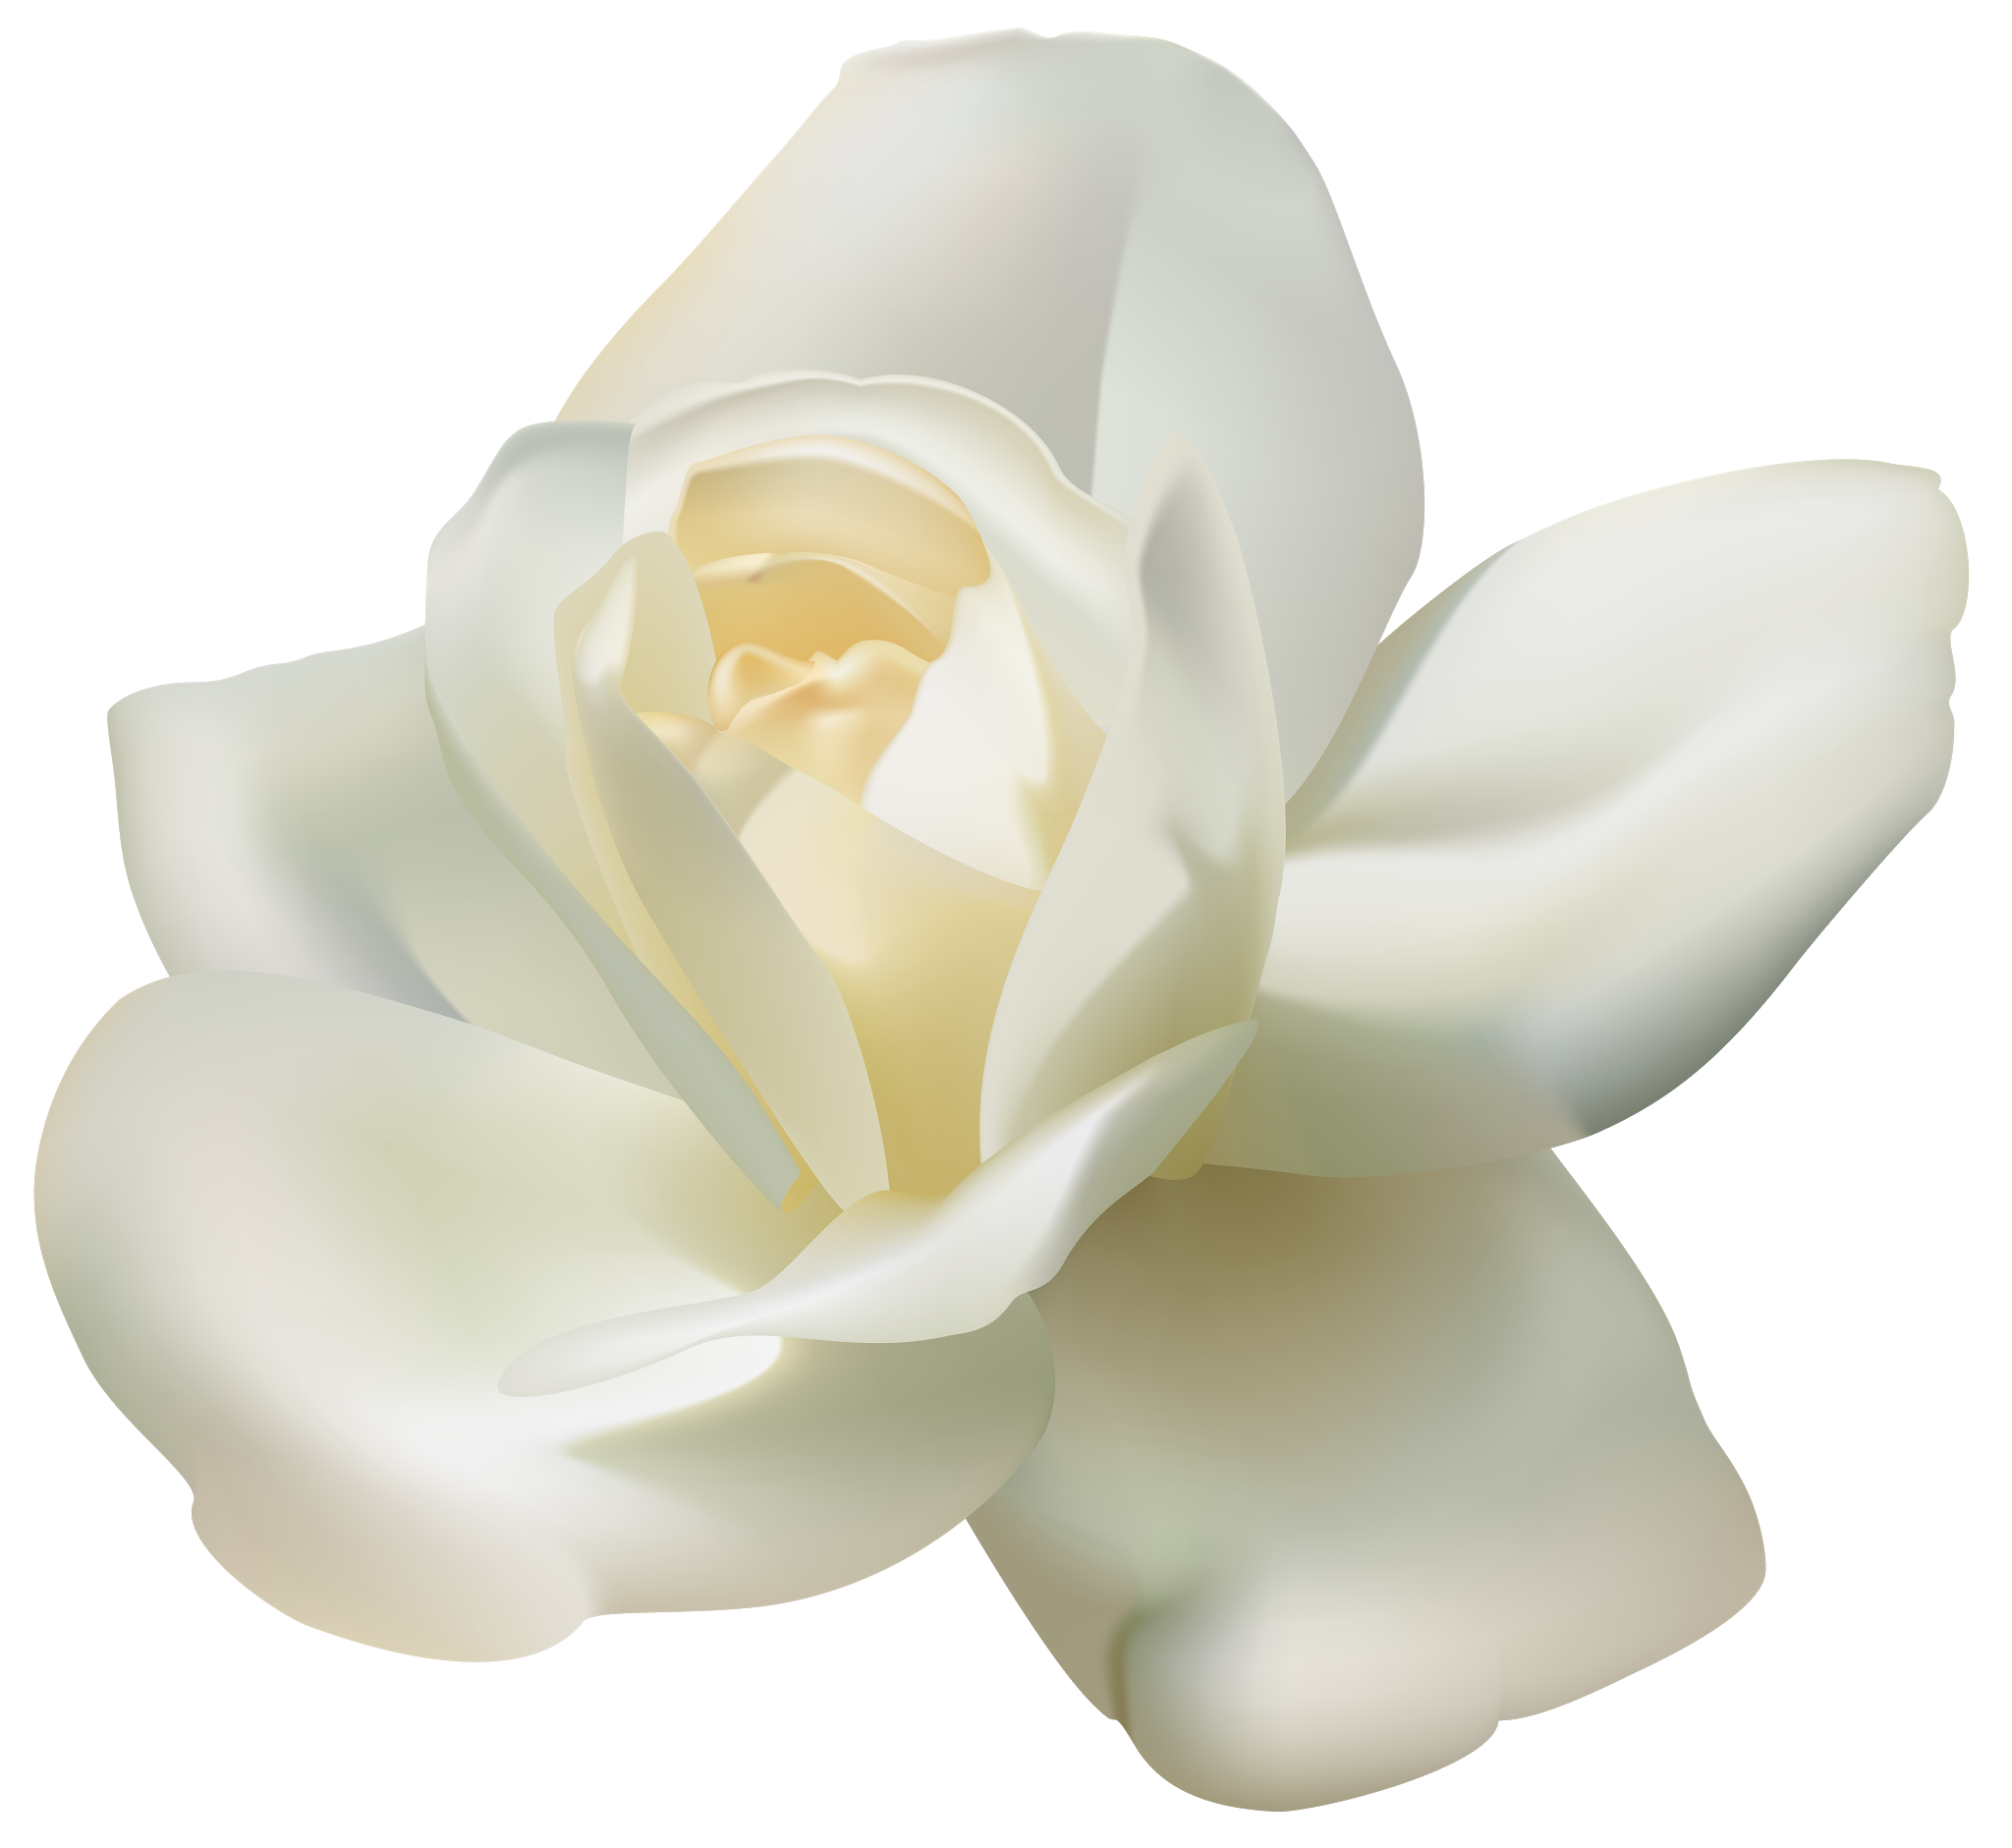 Rose Flower White White Rose Png Image White Rose Png Rose Doodle Flower Bouquet Png